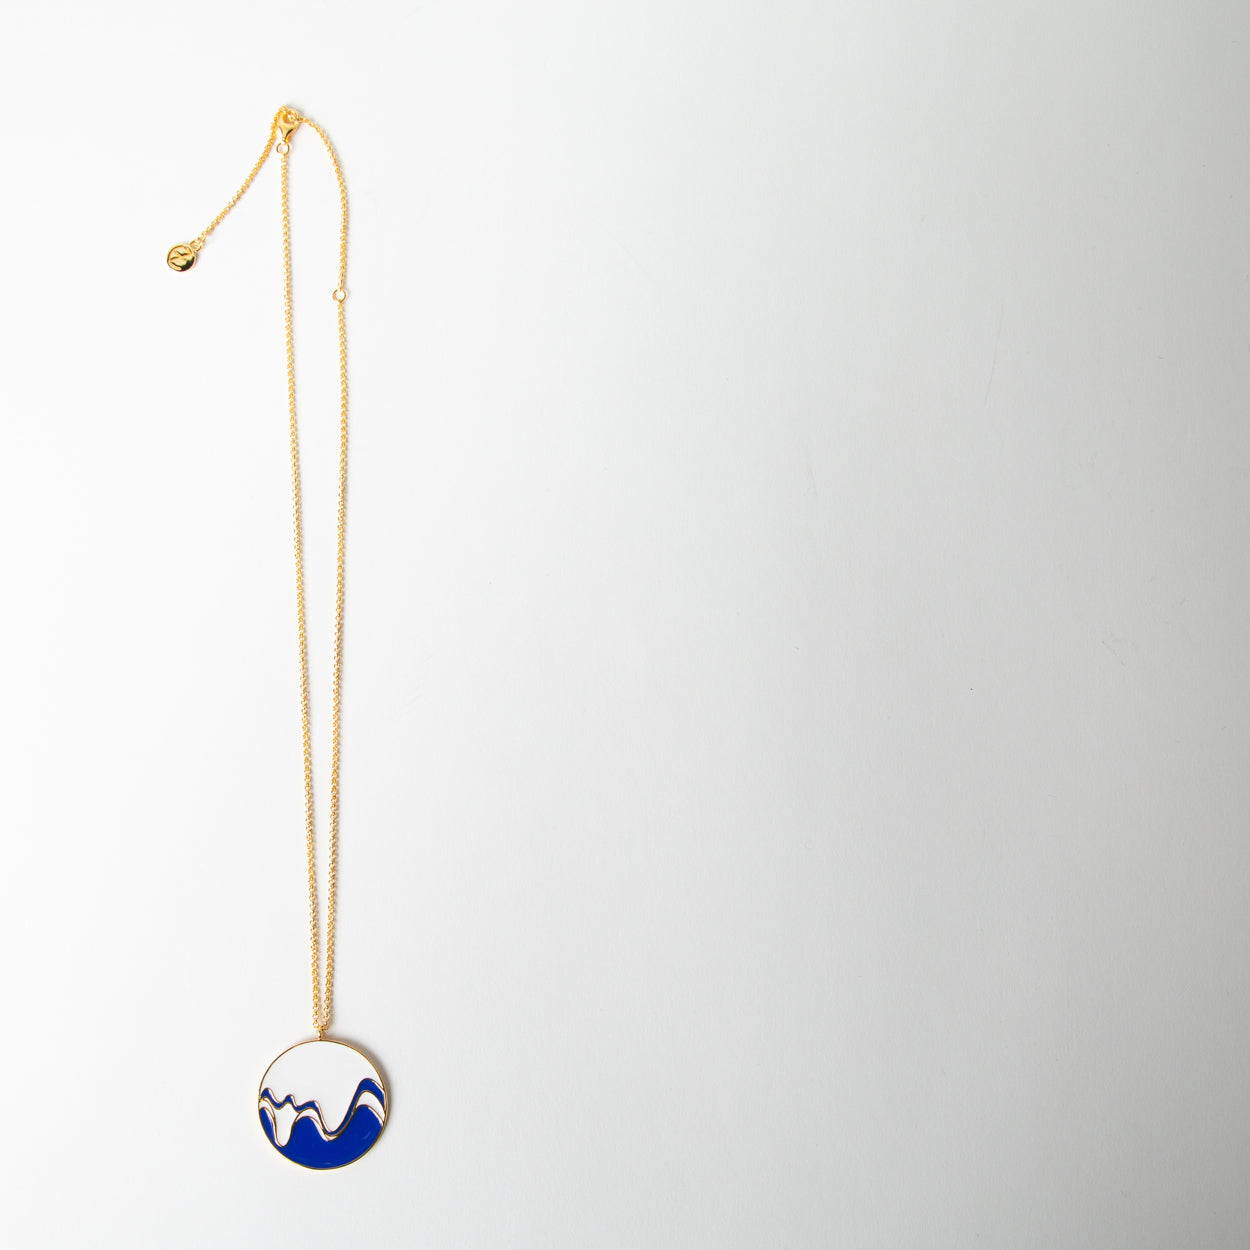 Waterline Enamel Necklace, black